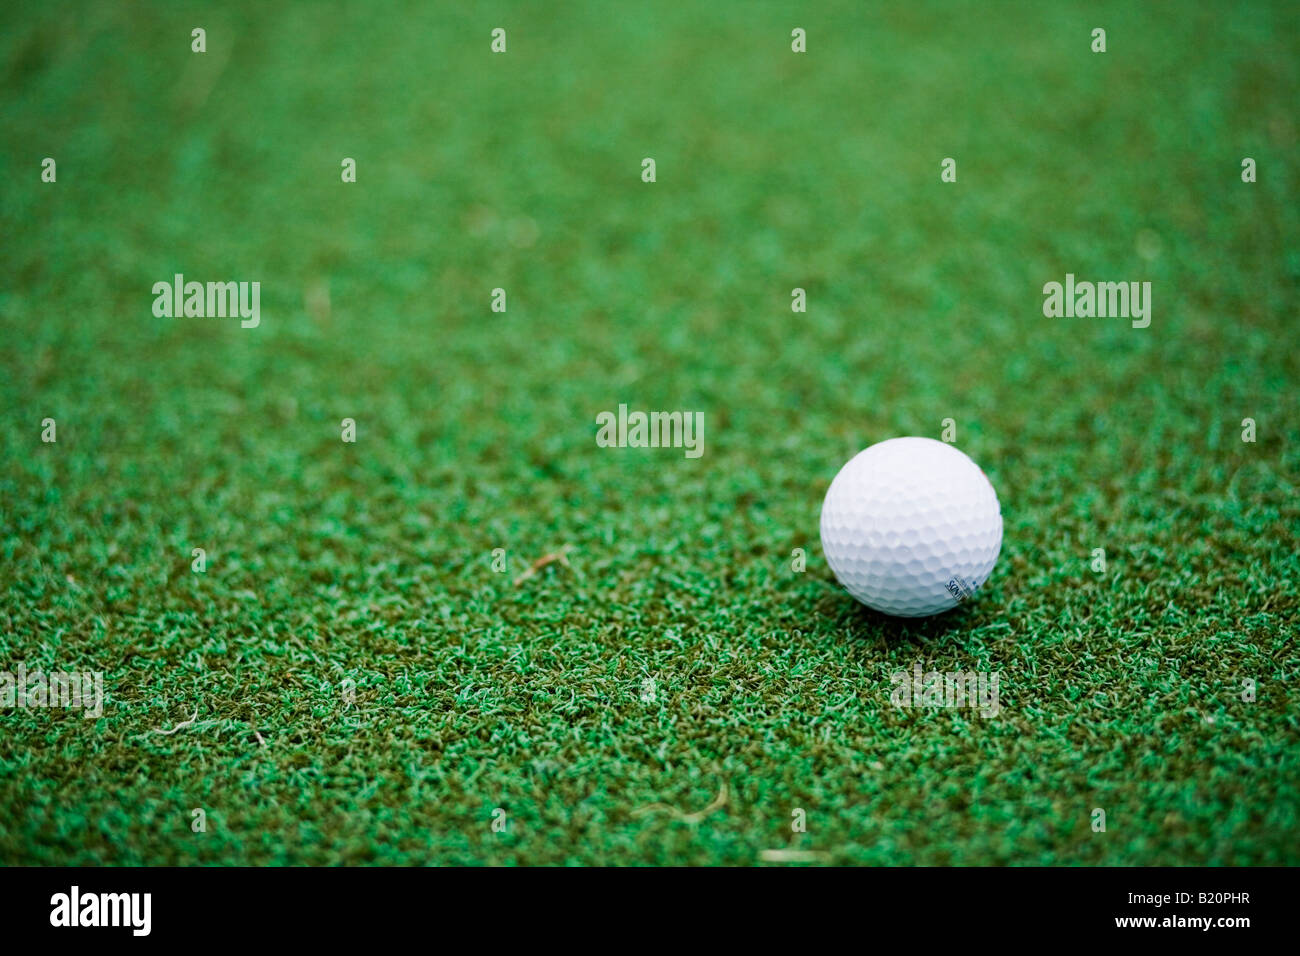 Golf ball on astro turf - Stock Image